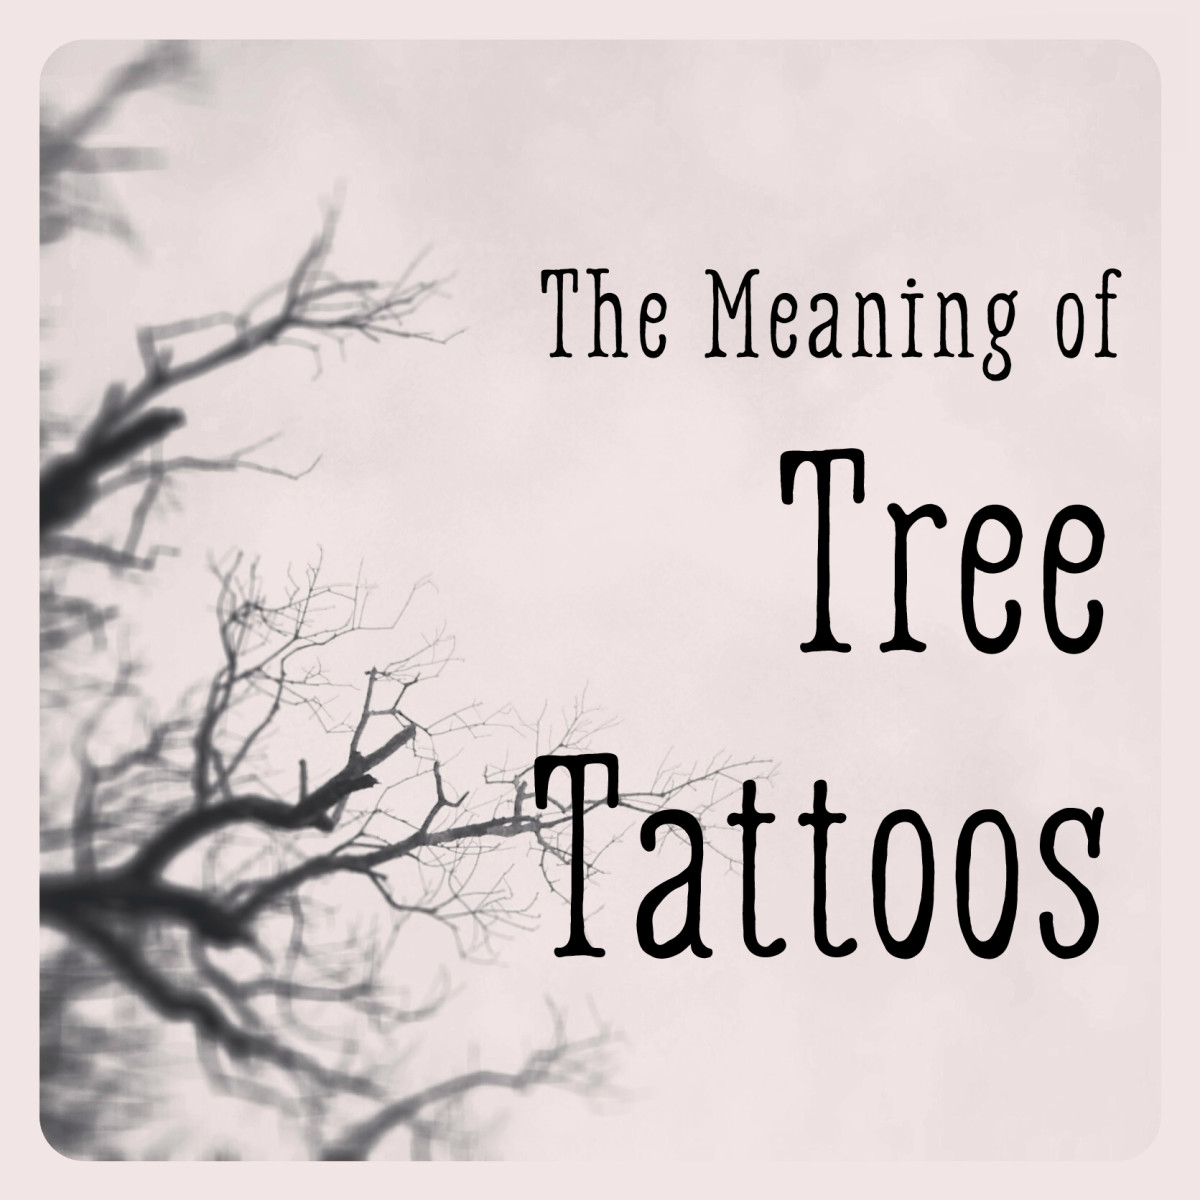 Hawthorn Tree Tattoo The Meaning of Tree Tattoos